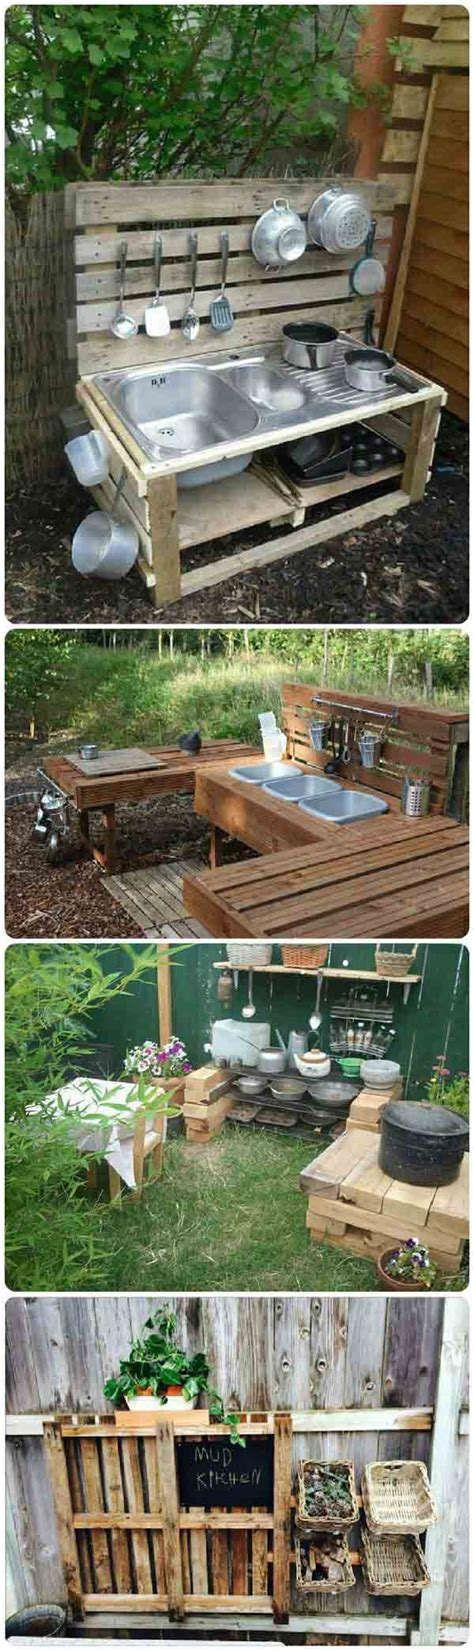 diy outside projects 25 playful diy backyard projects to surprise your kids amazing diy interior home design